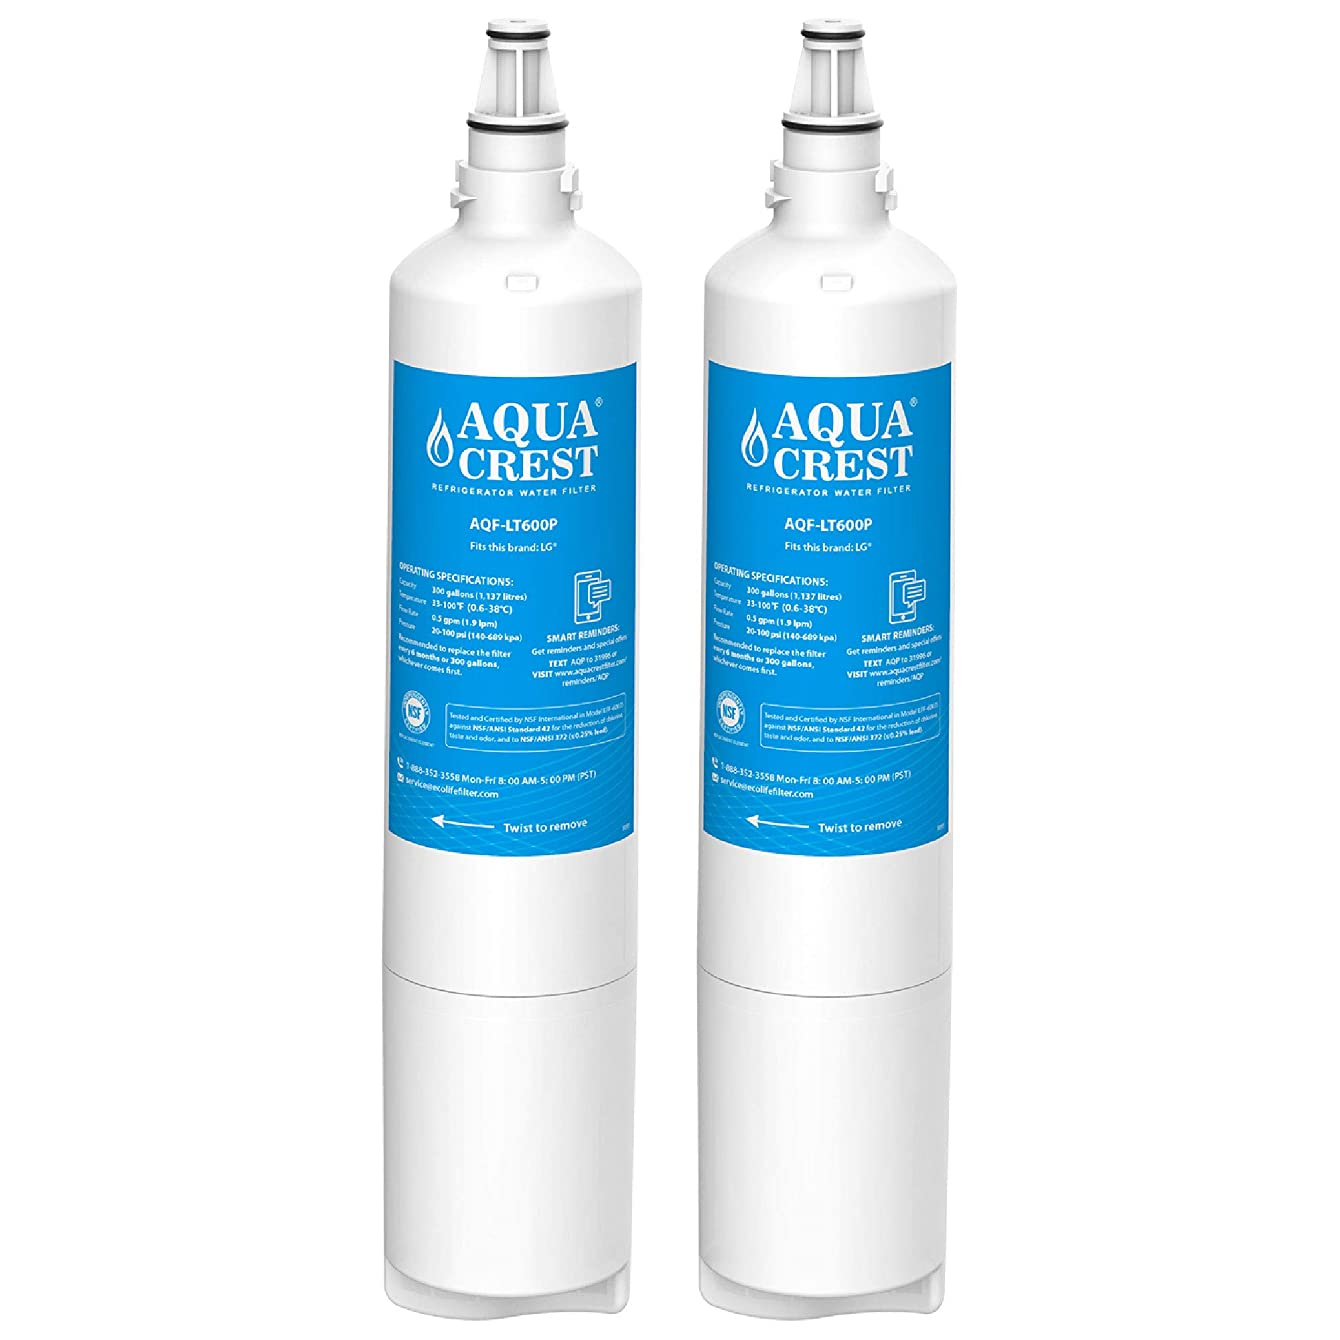 AQUACREST 5231JA2006A Refrigerator Water Filter, Compatible with LG LT600P, 5231JA2006B, 5231JA2006A, KENMORE 46-9990, 9990 (Pack of 2)